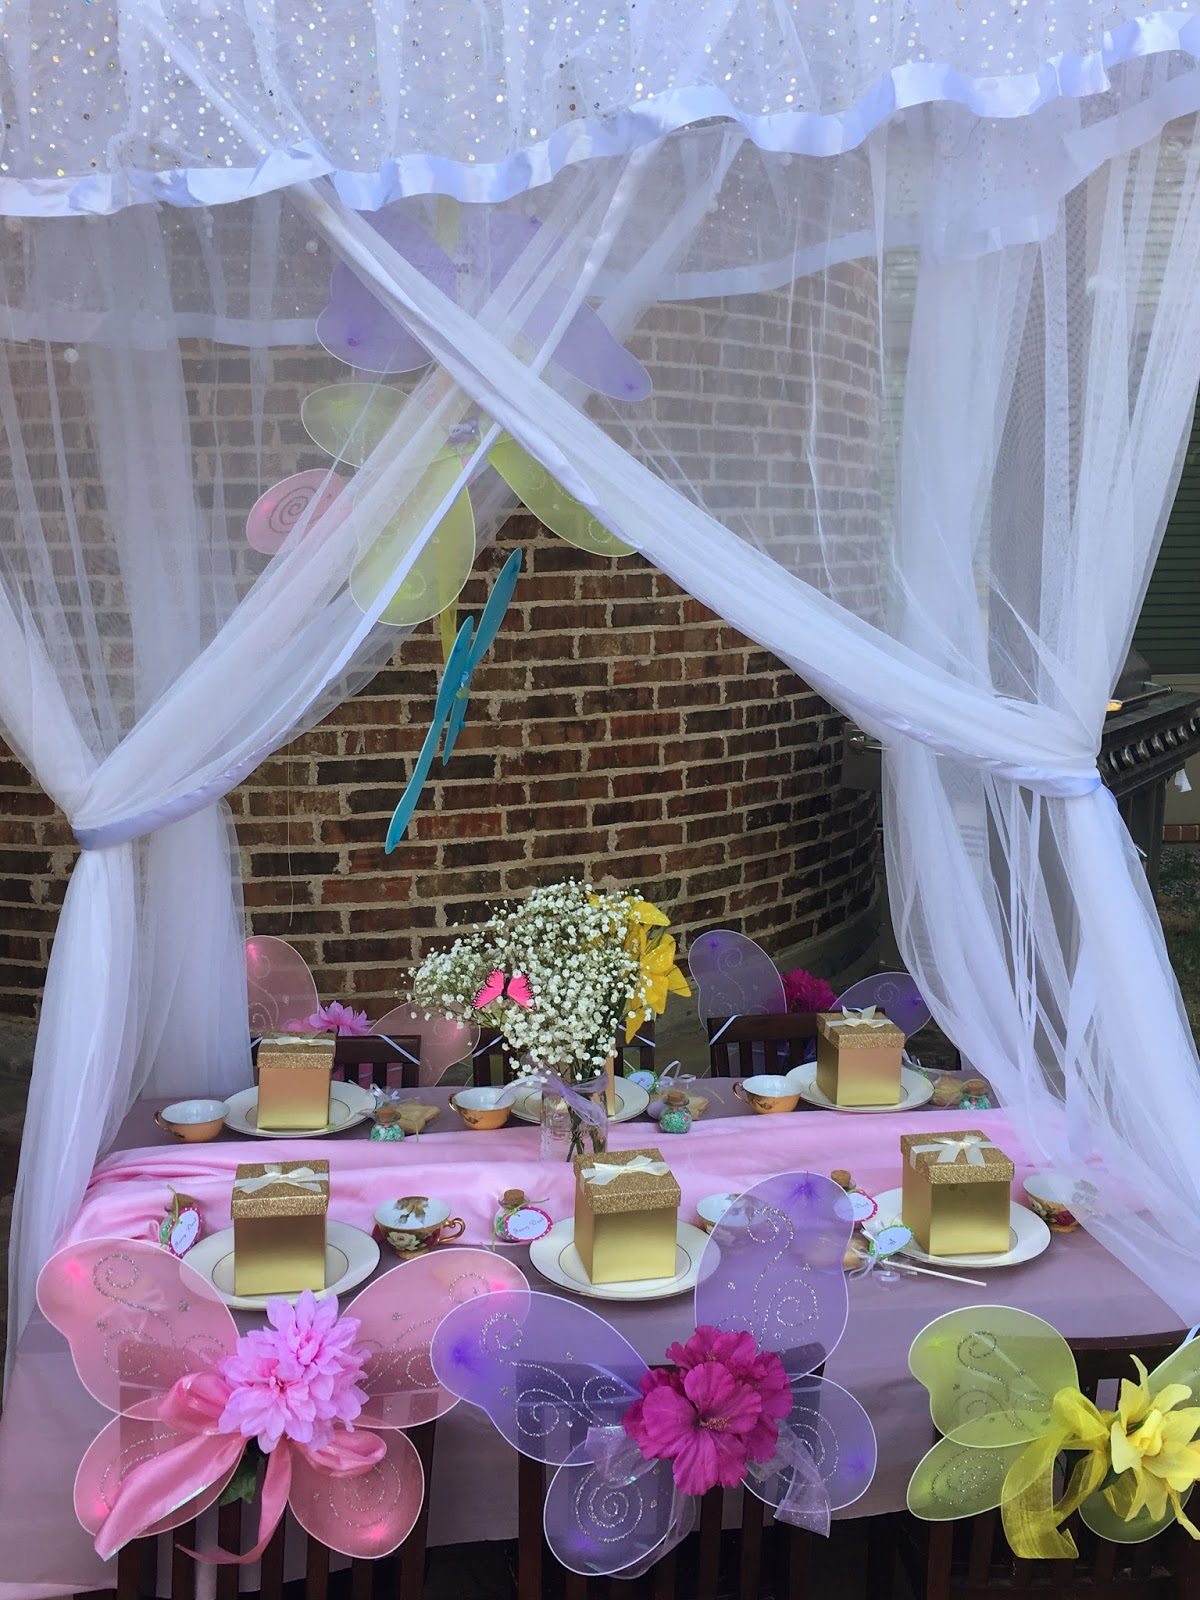 Mrs Party Planner How To Host An Outdoor Fairy Garden Party On A Budget